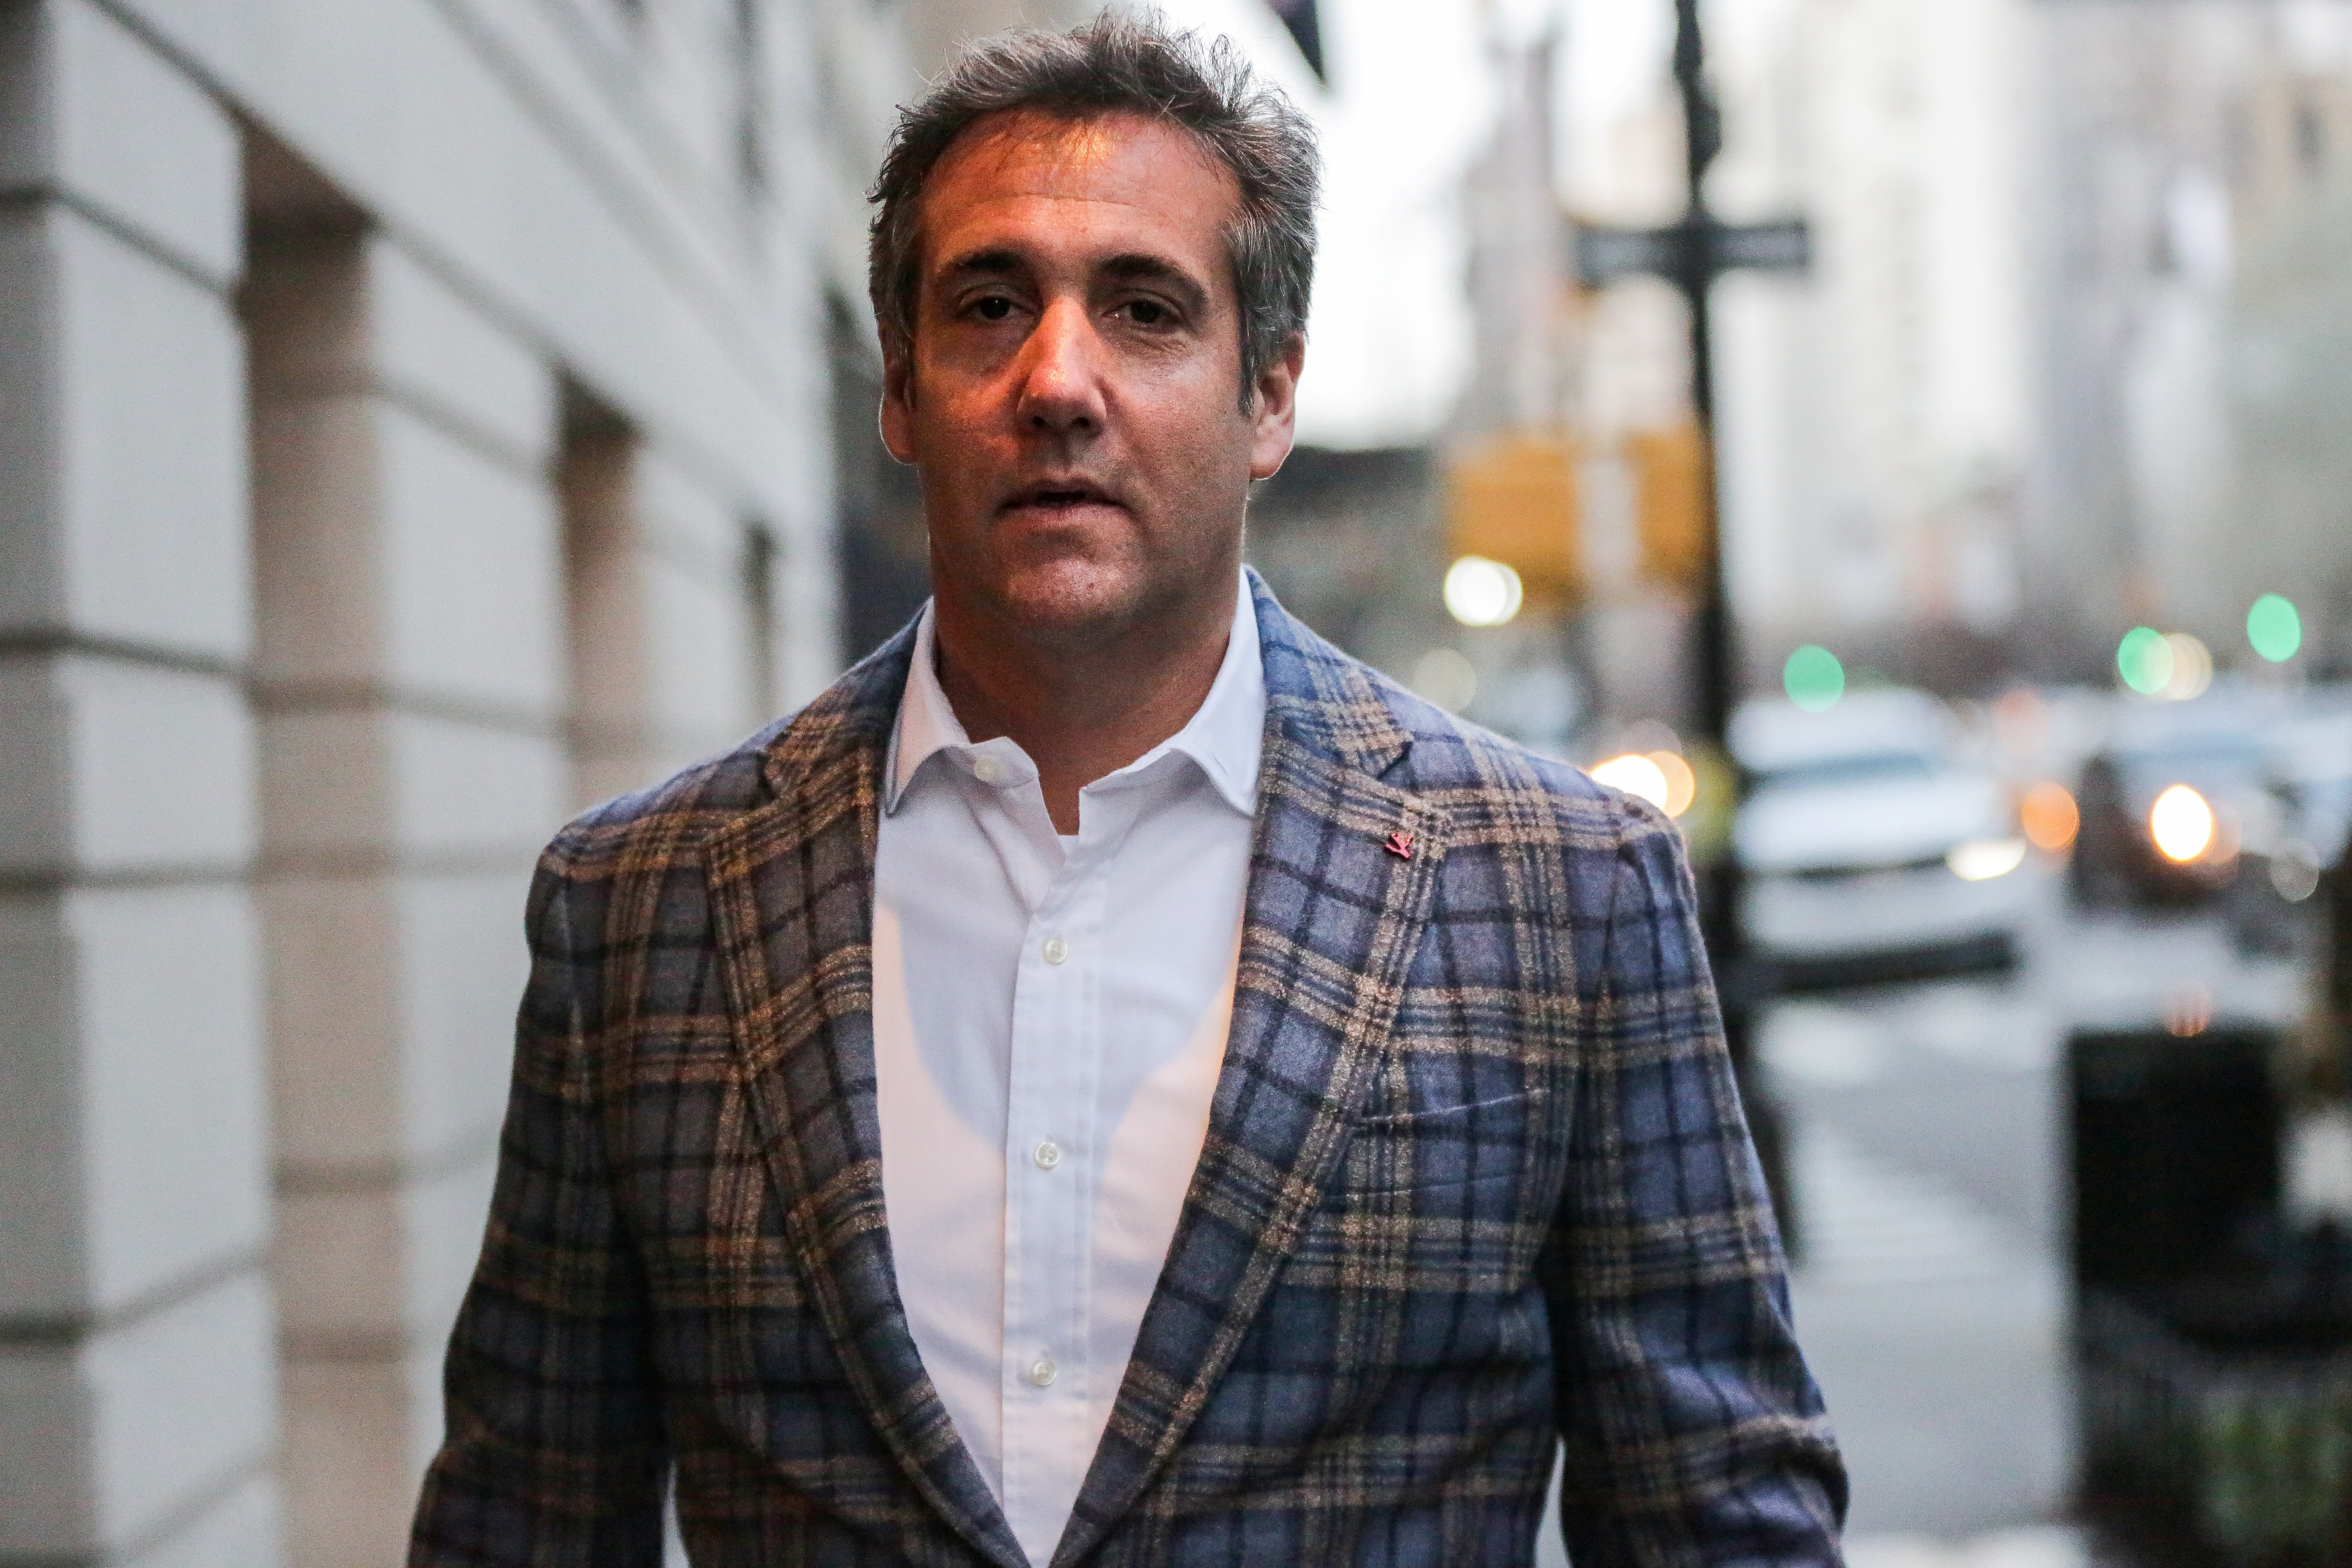 Michael Cohen, l'avocat personnel de Donald Trump comparaît ce lundi devant une juge de-New York. Ici à New York le 13 avril.